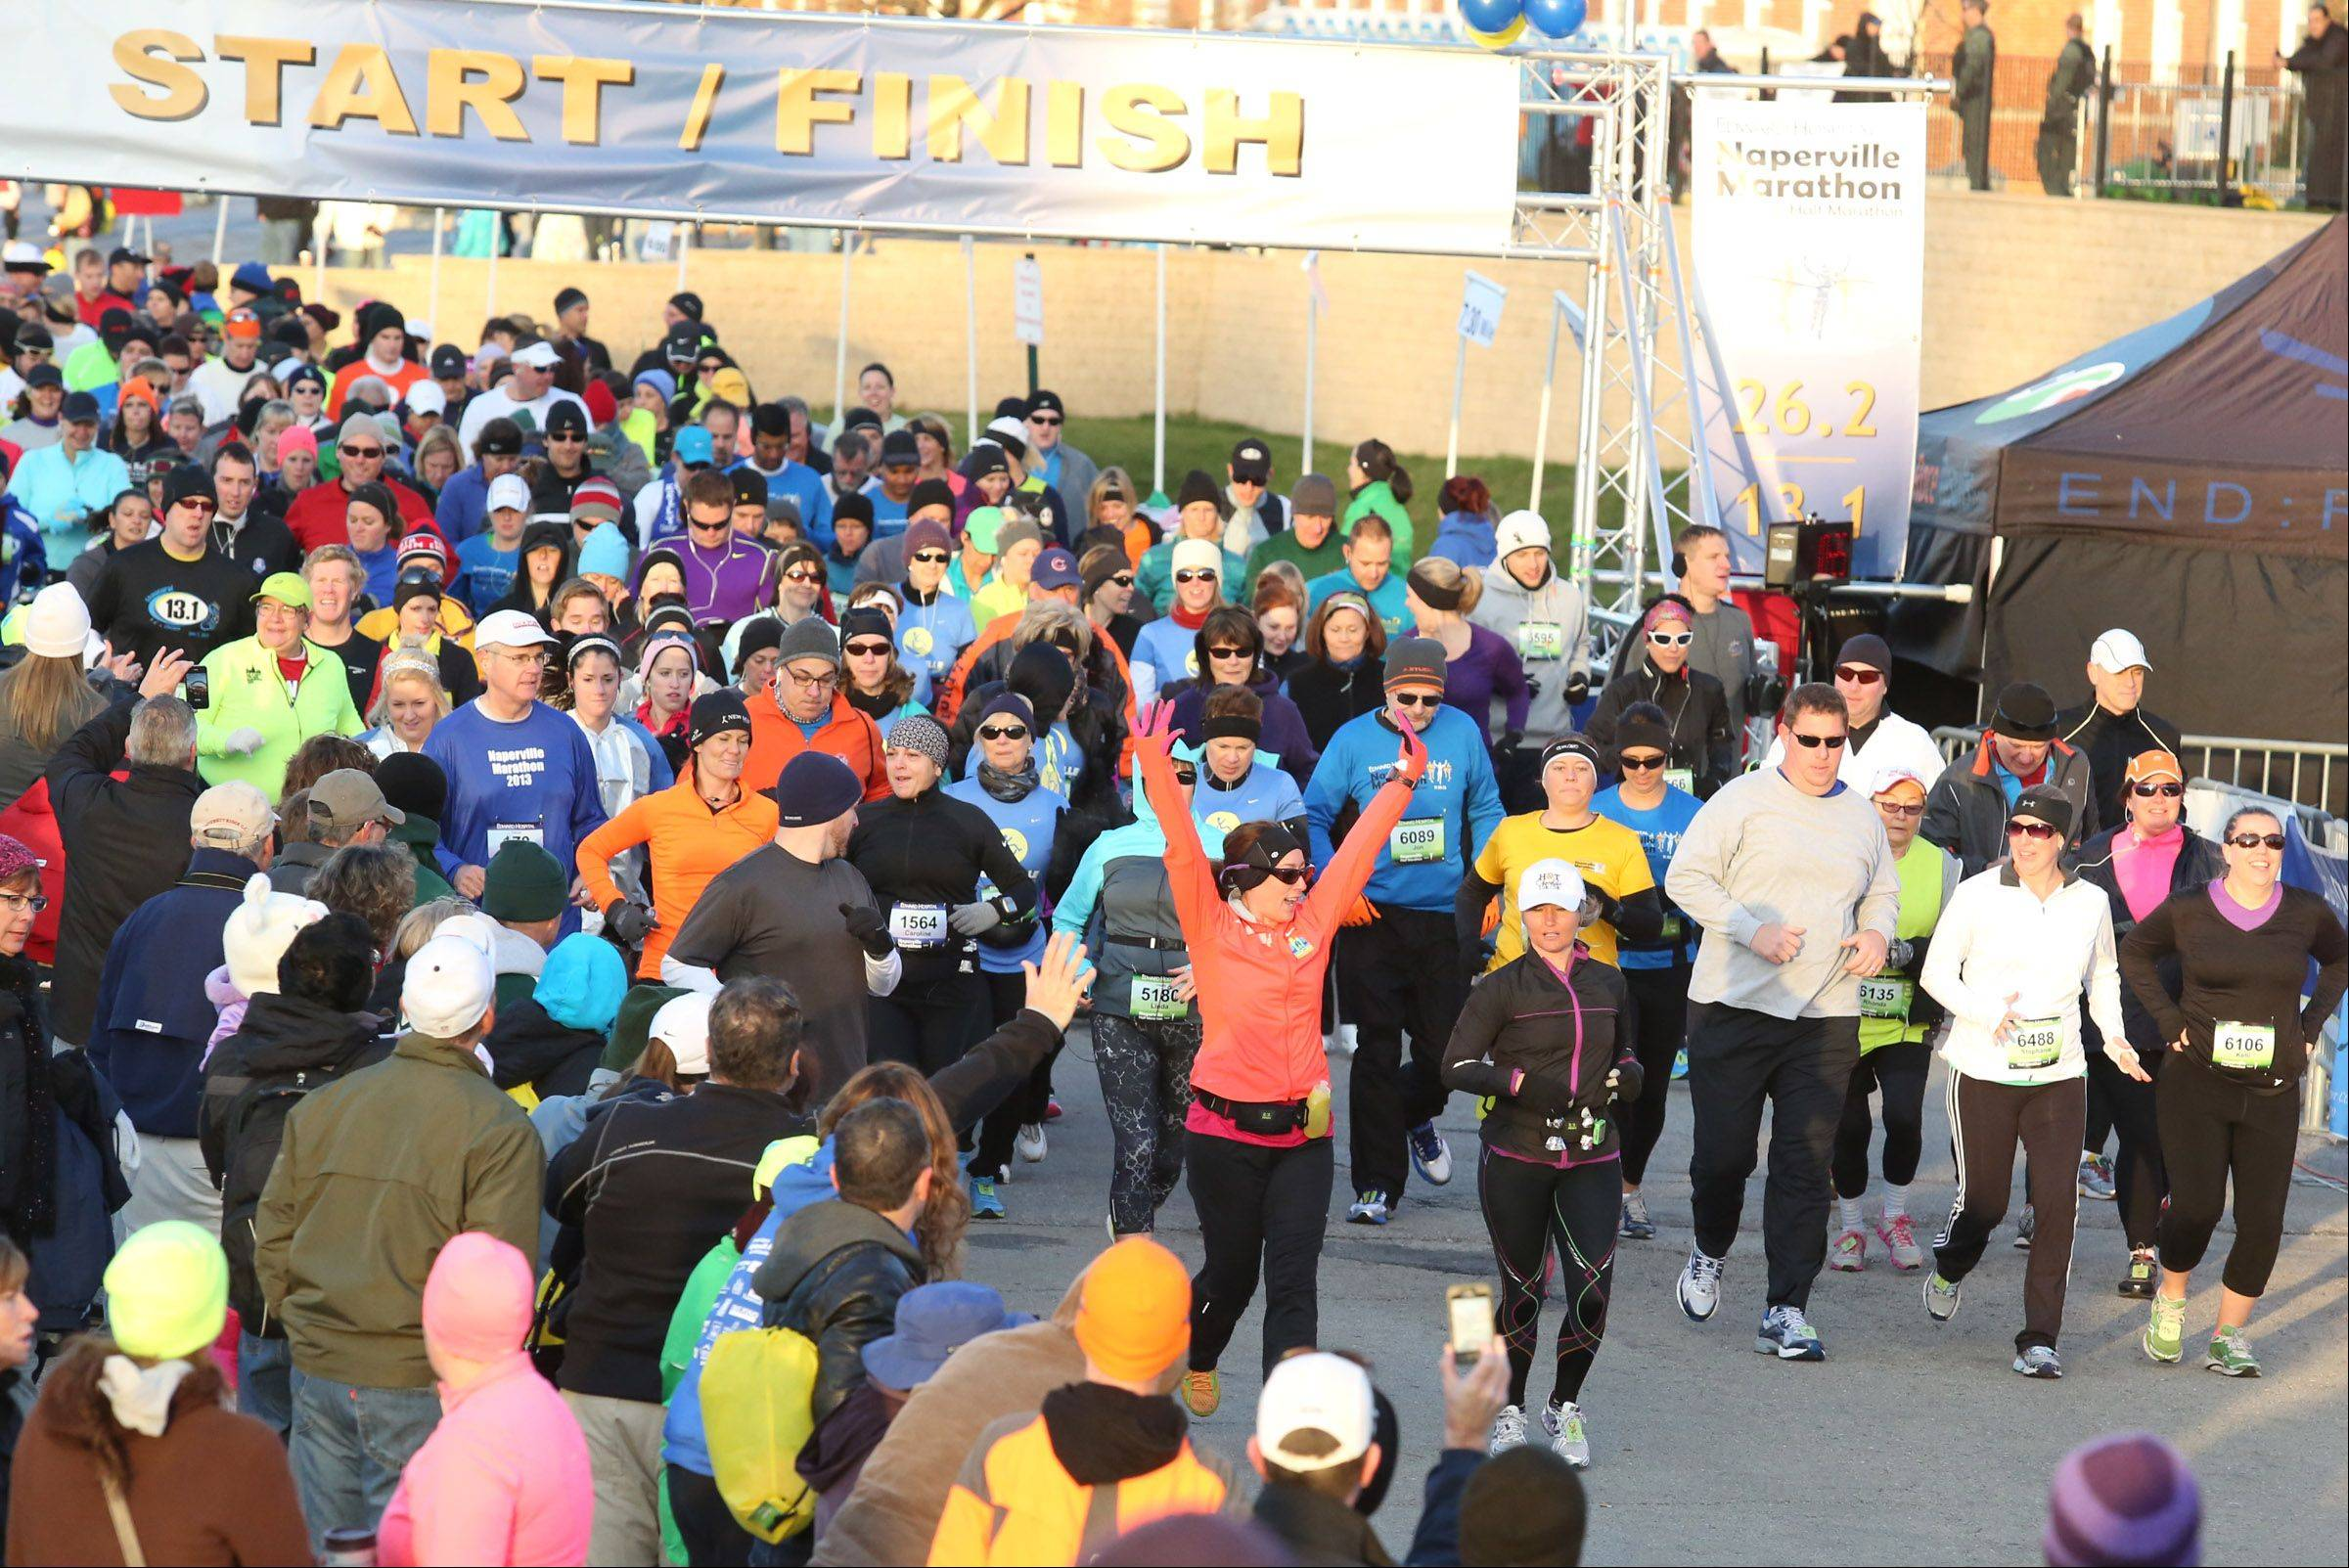 Naperville Marathon organizers looking to make event even bigger